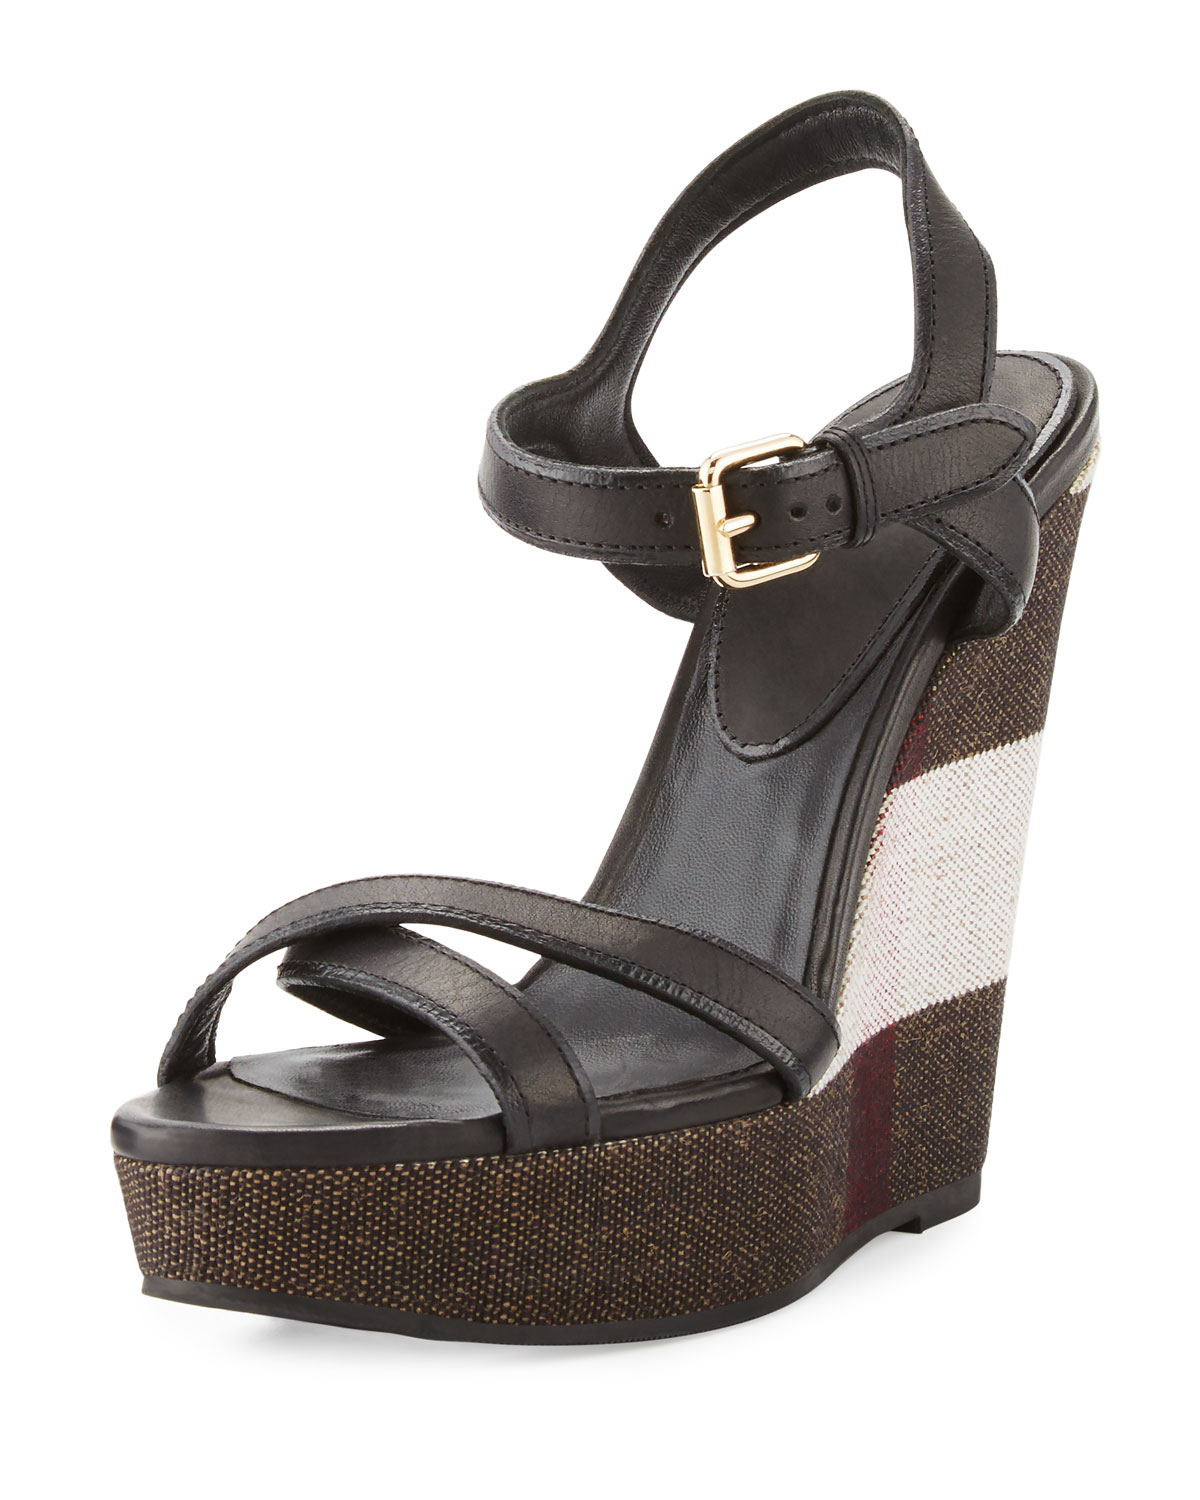 7e08bd75f7f56 Burberry Whelan Crisscross Check Wedge Sandal, Black | Neiman Marcus